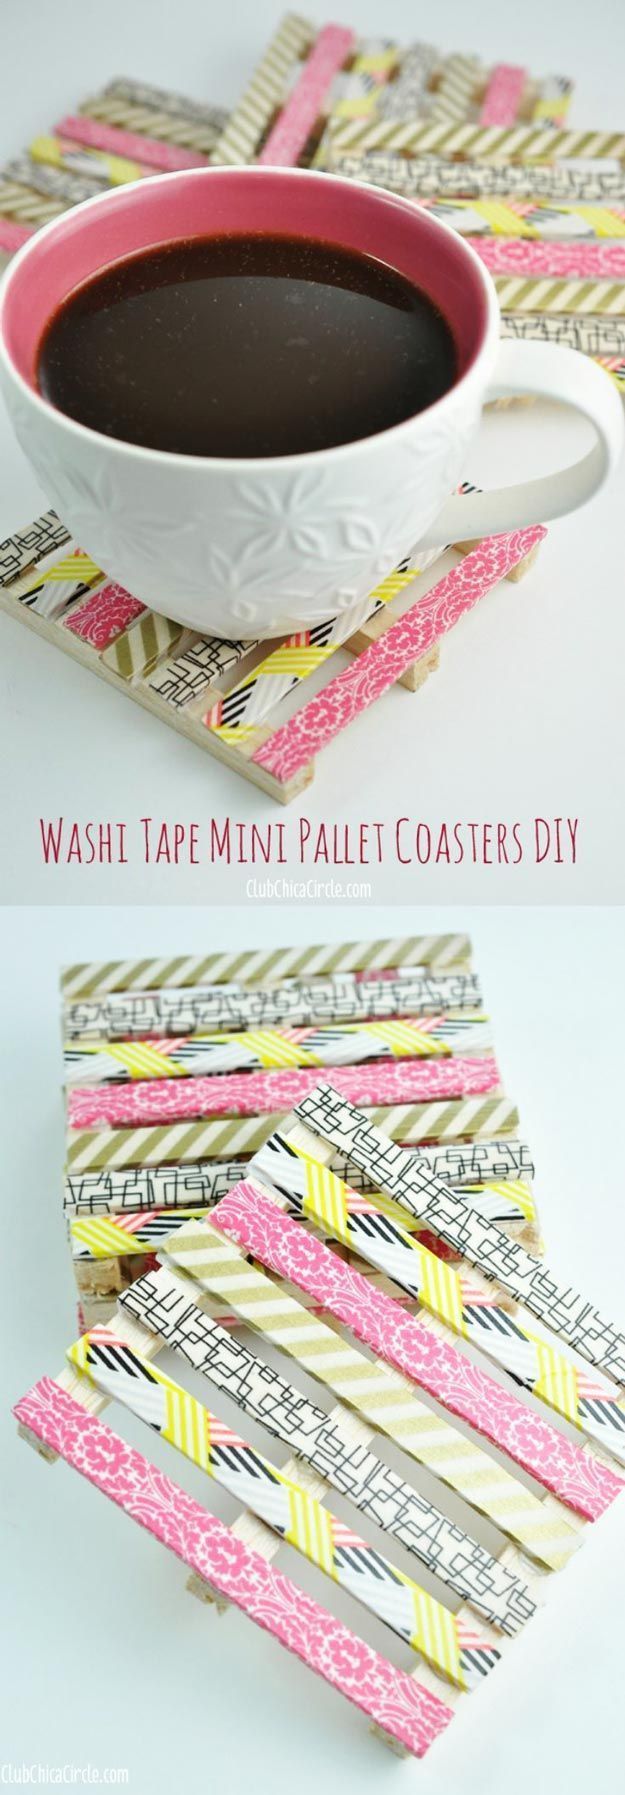 47 Fun Pinterest Crafts That Arent Impossible